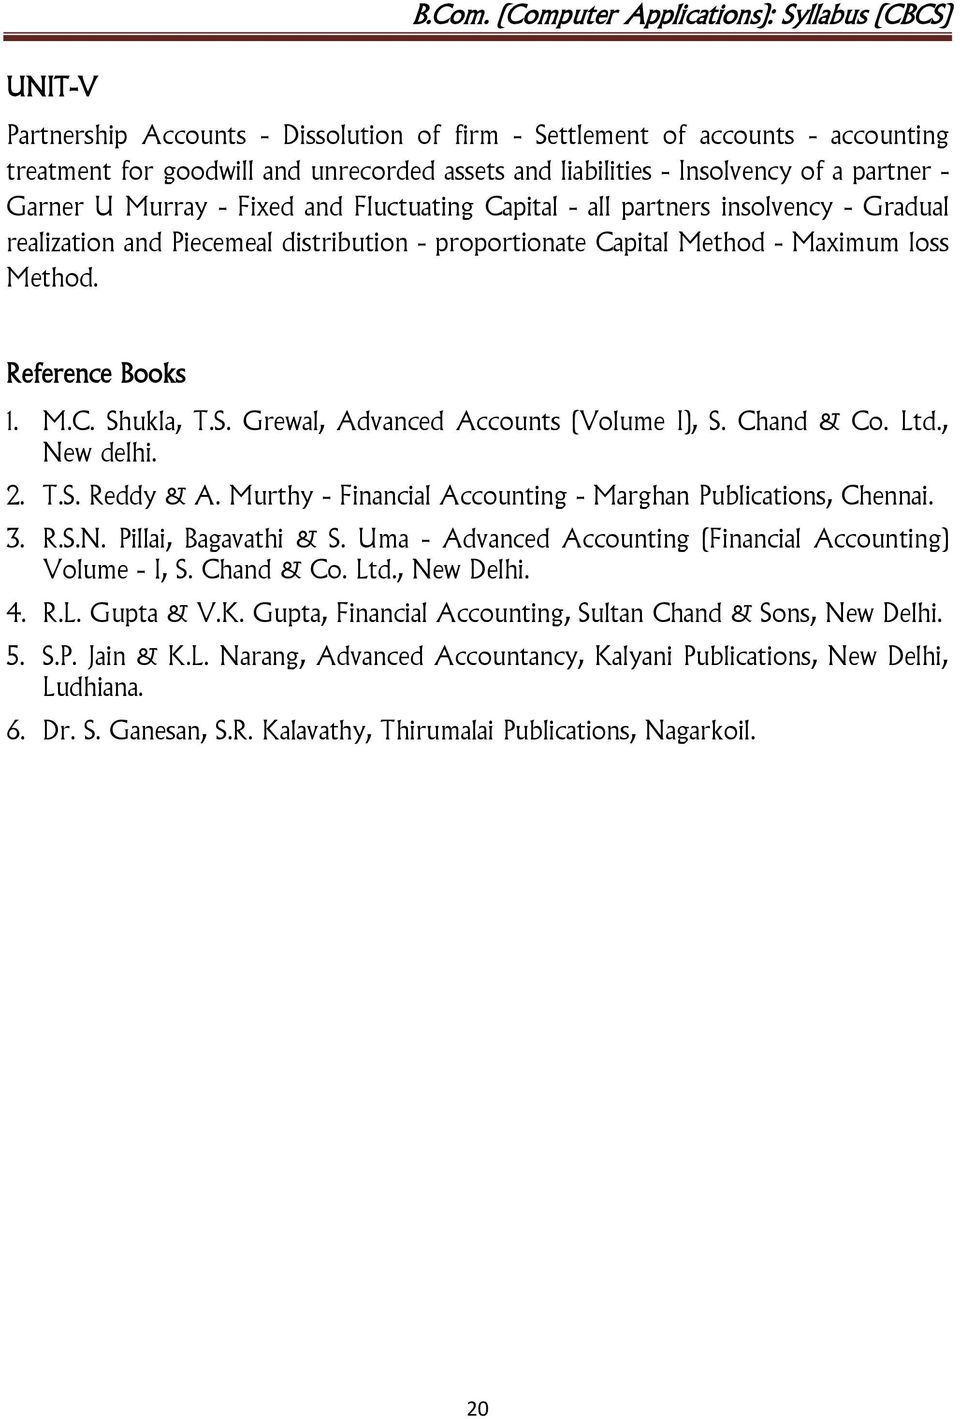 financial accounting book by ts reddy and murthy free download